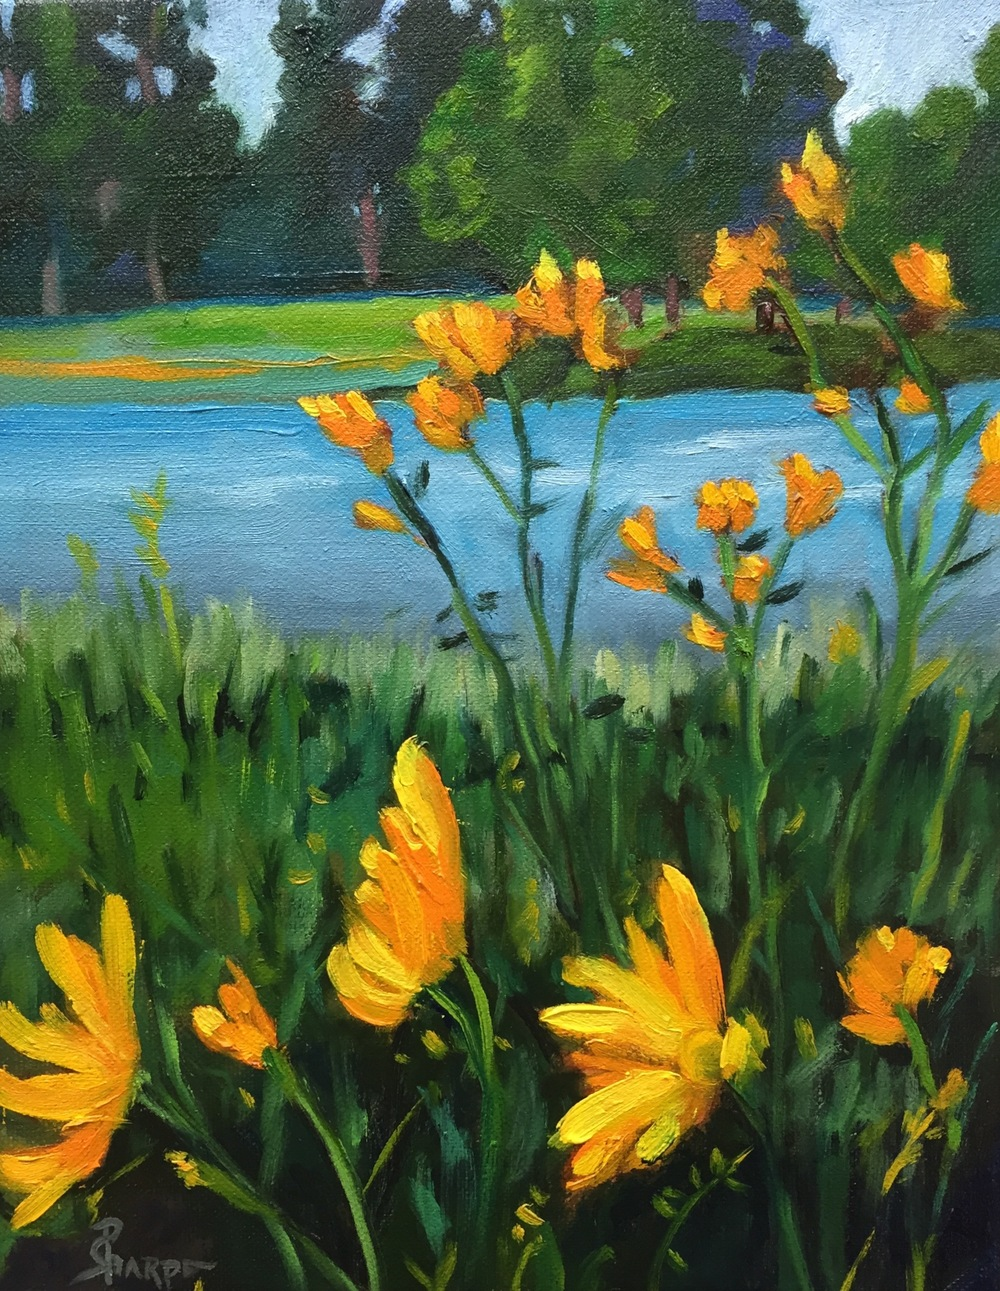 water-yellow-flowers-oil-paintings-phyllis-sharpe-IMG_0747.jpg